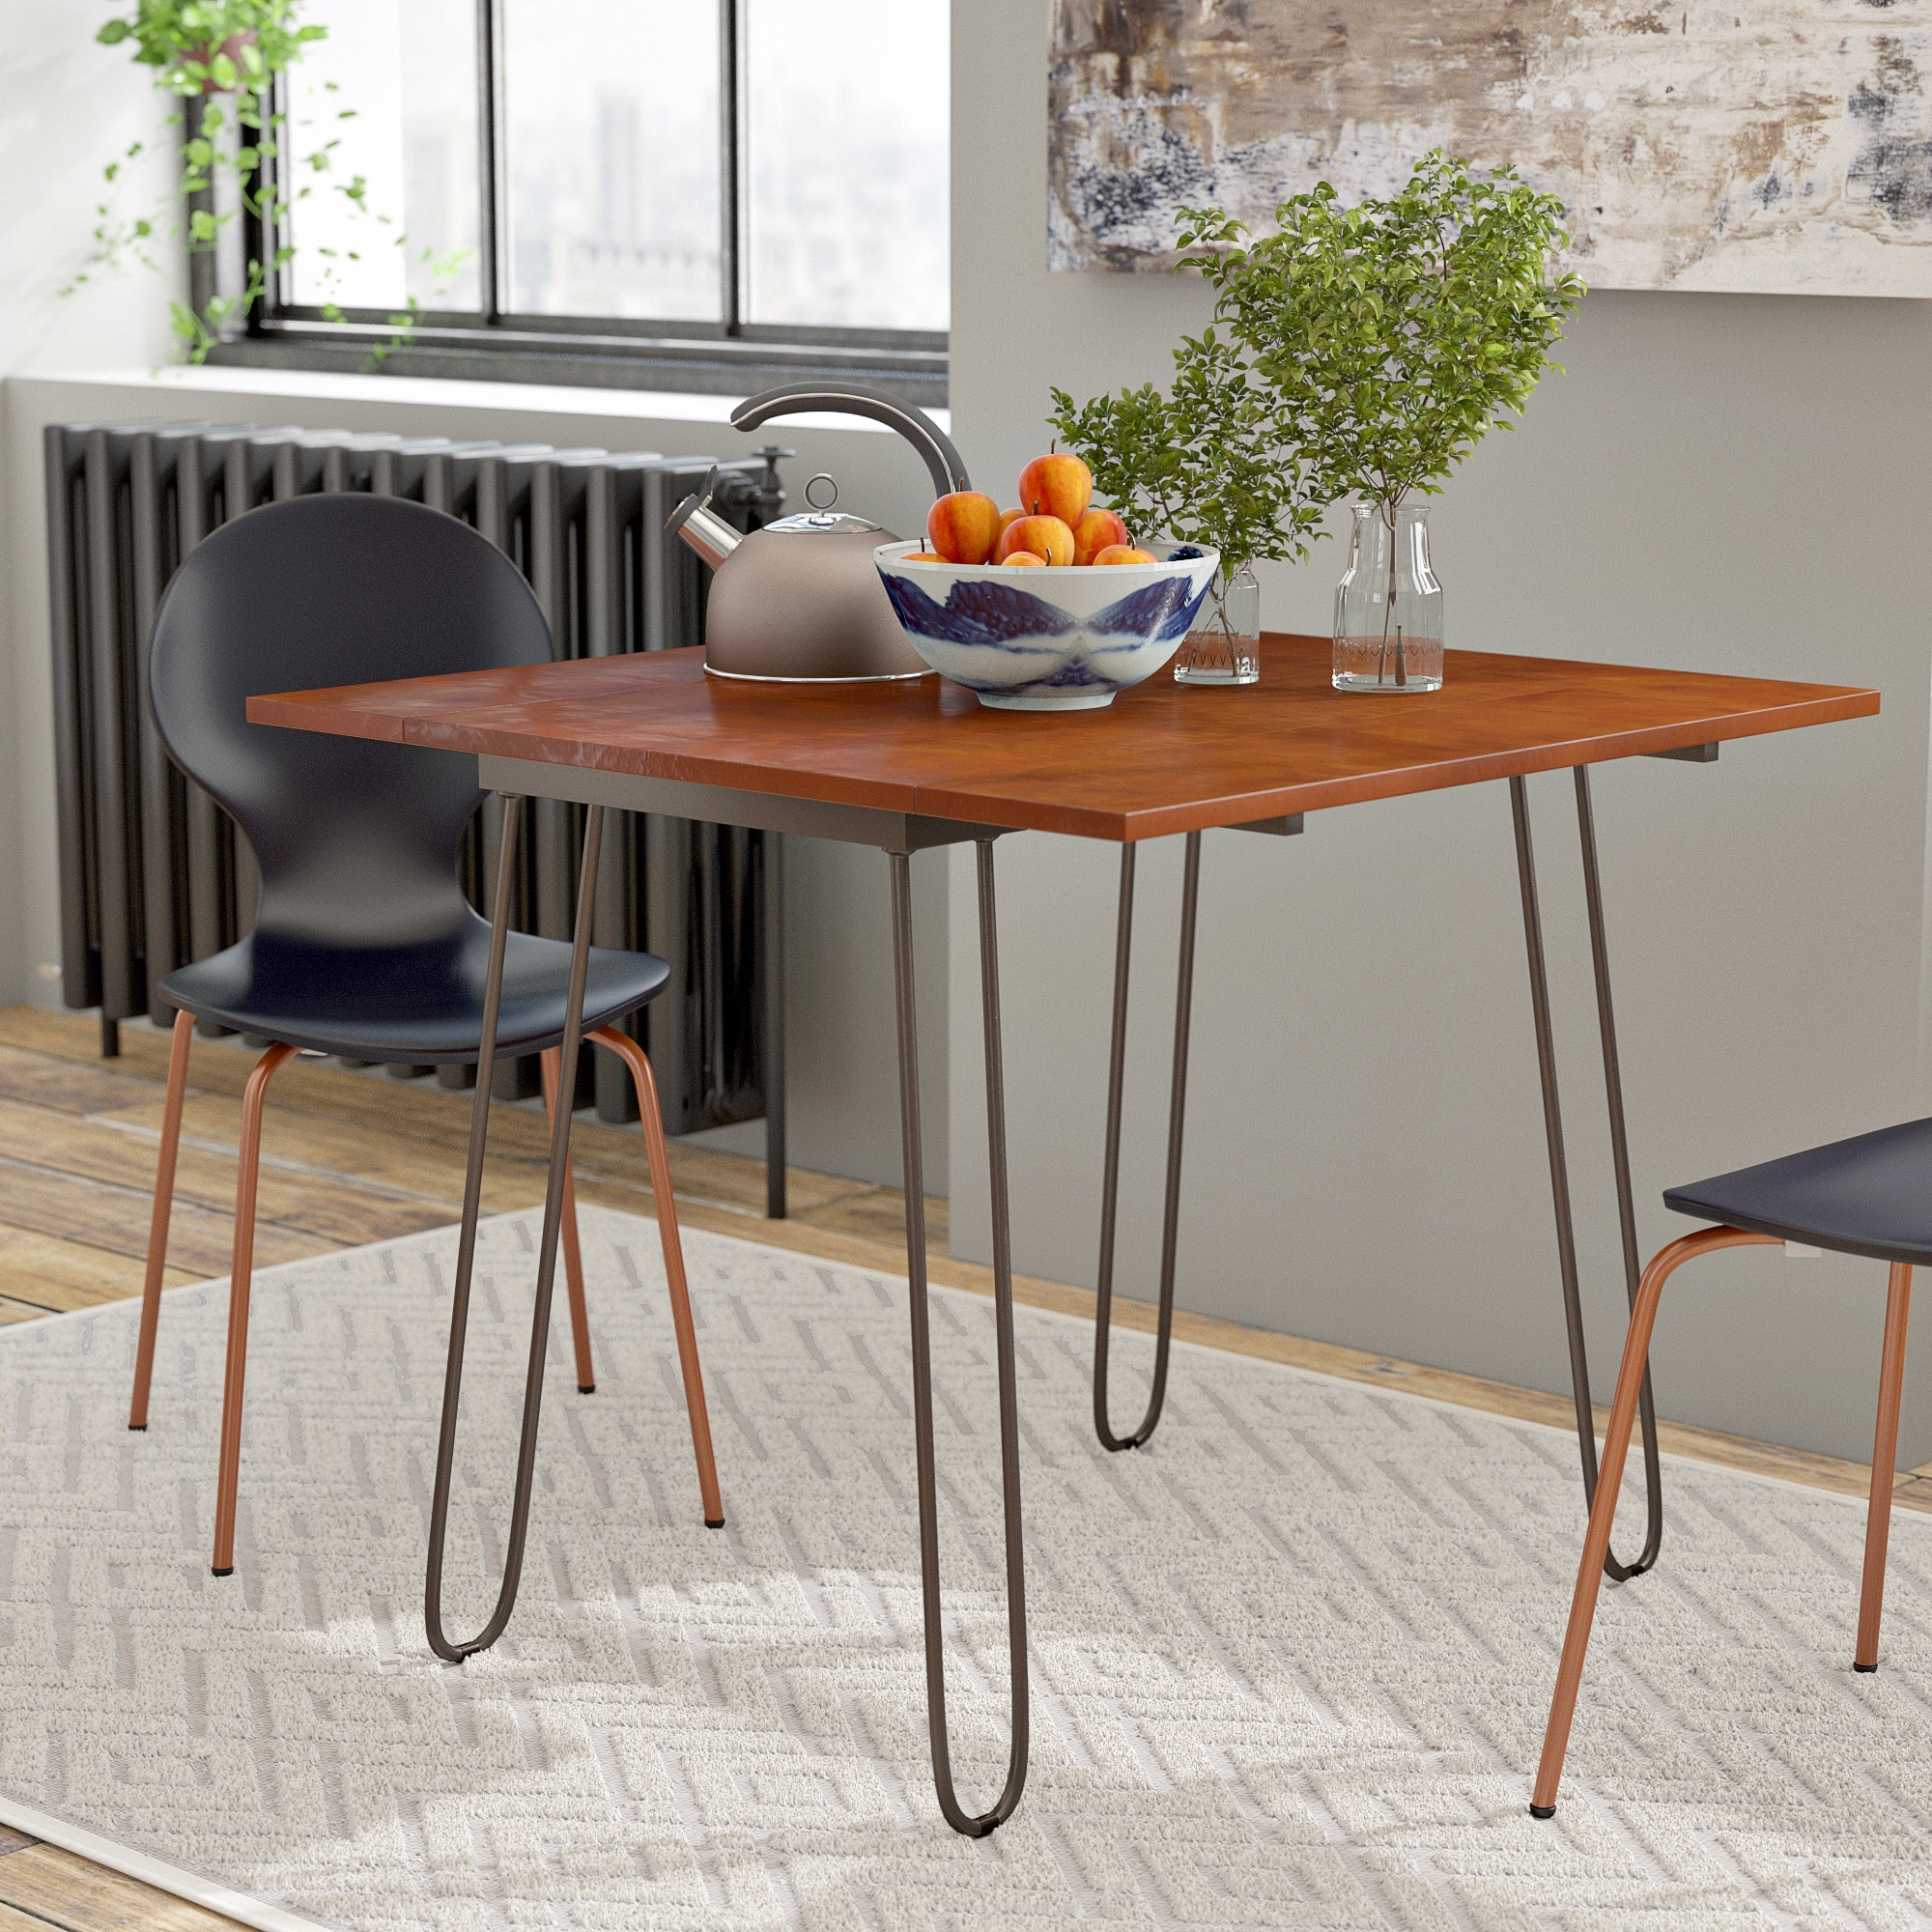 Cheap Drop Leaf Dining Tables In Most Recent Wrought Studio Parikh Drop Leaf Dining Table With Hairpin Legs (View 6 of 25)